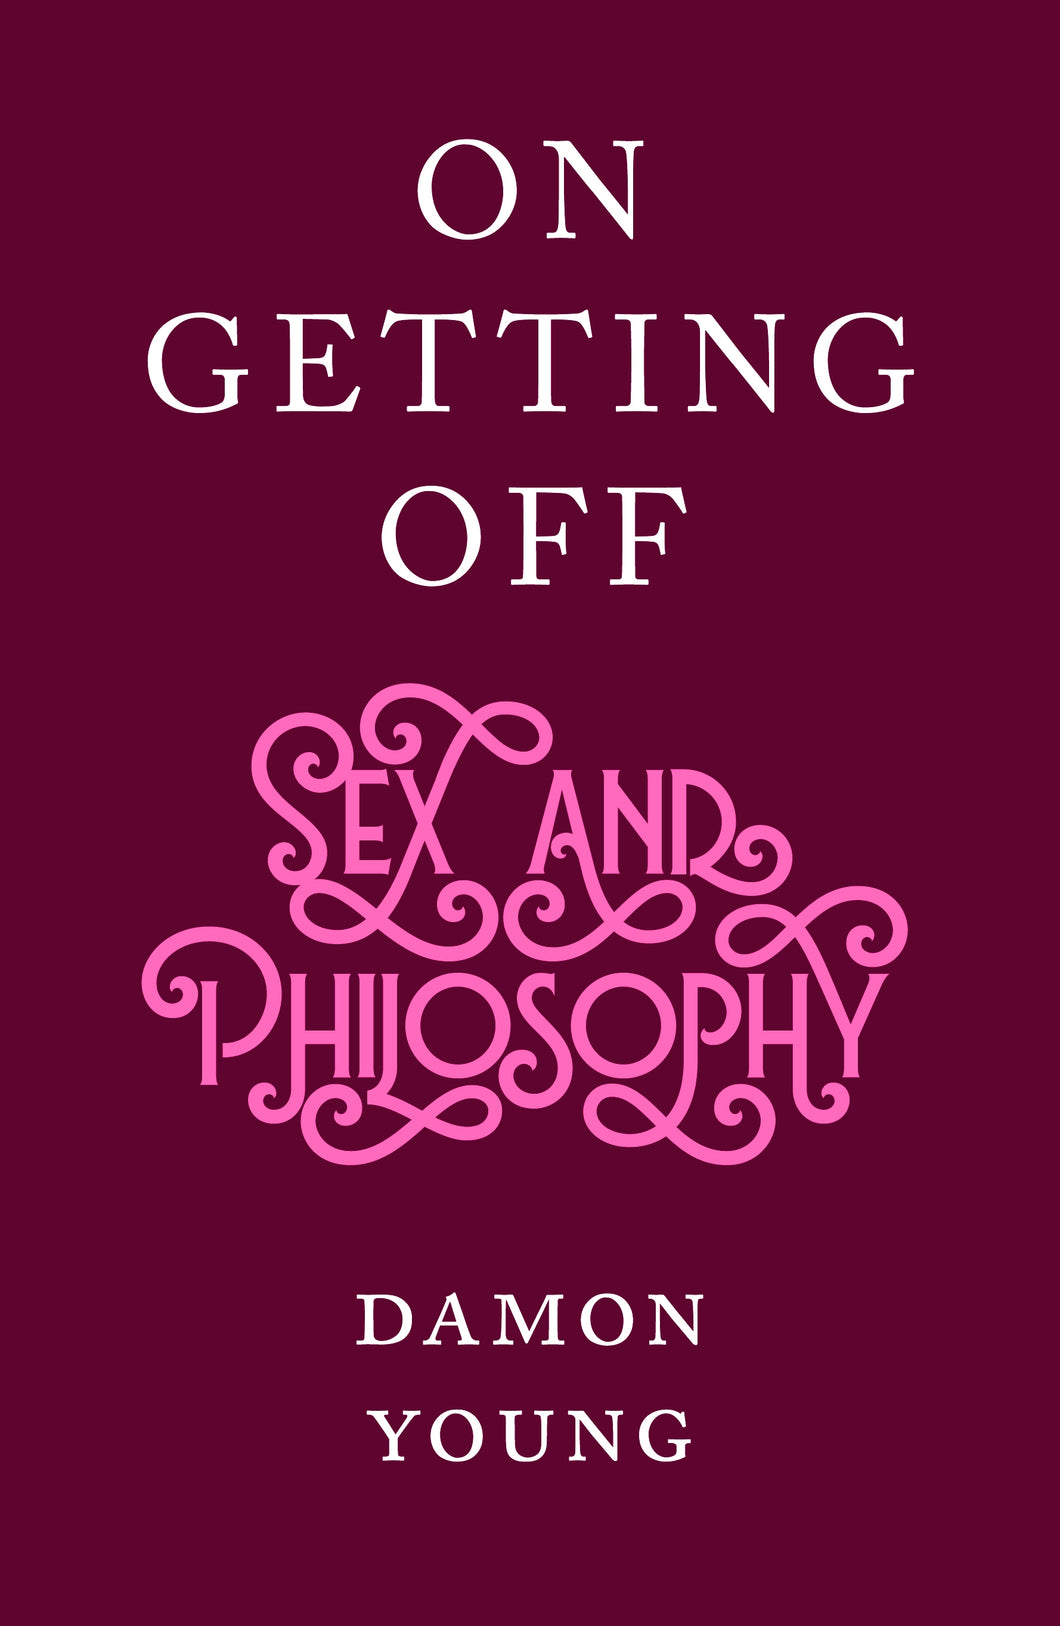 On Getting Off, Sex and Philosophy by Damon Young